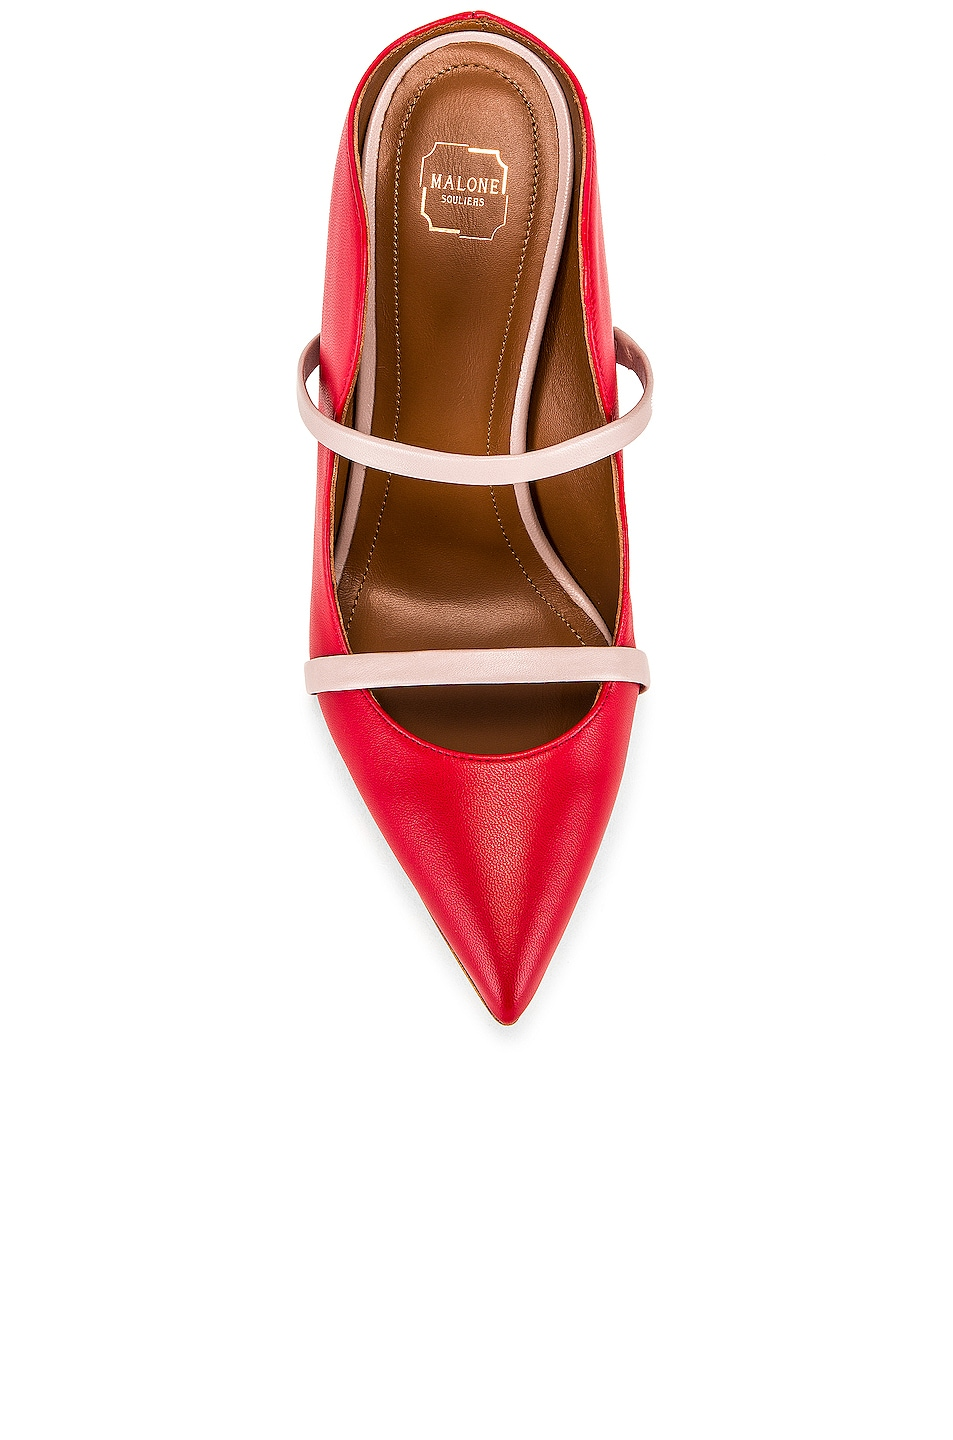 Image 4 of Malone Souliers Maureen MS 100 Heel in Red & Dusty Pink